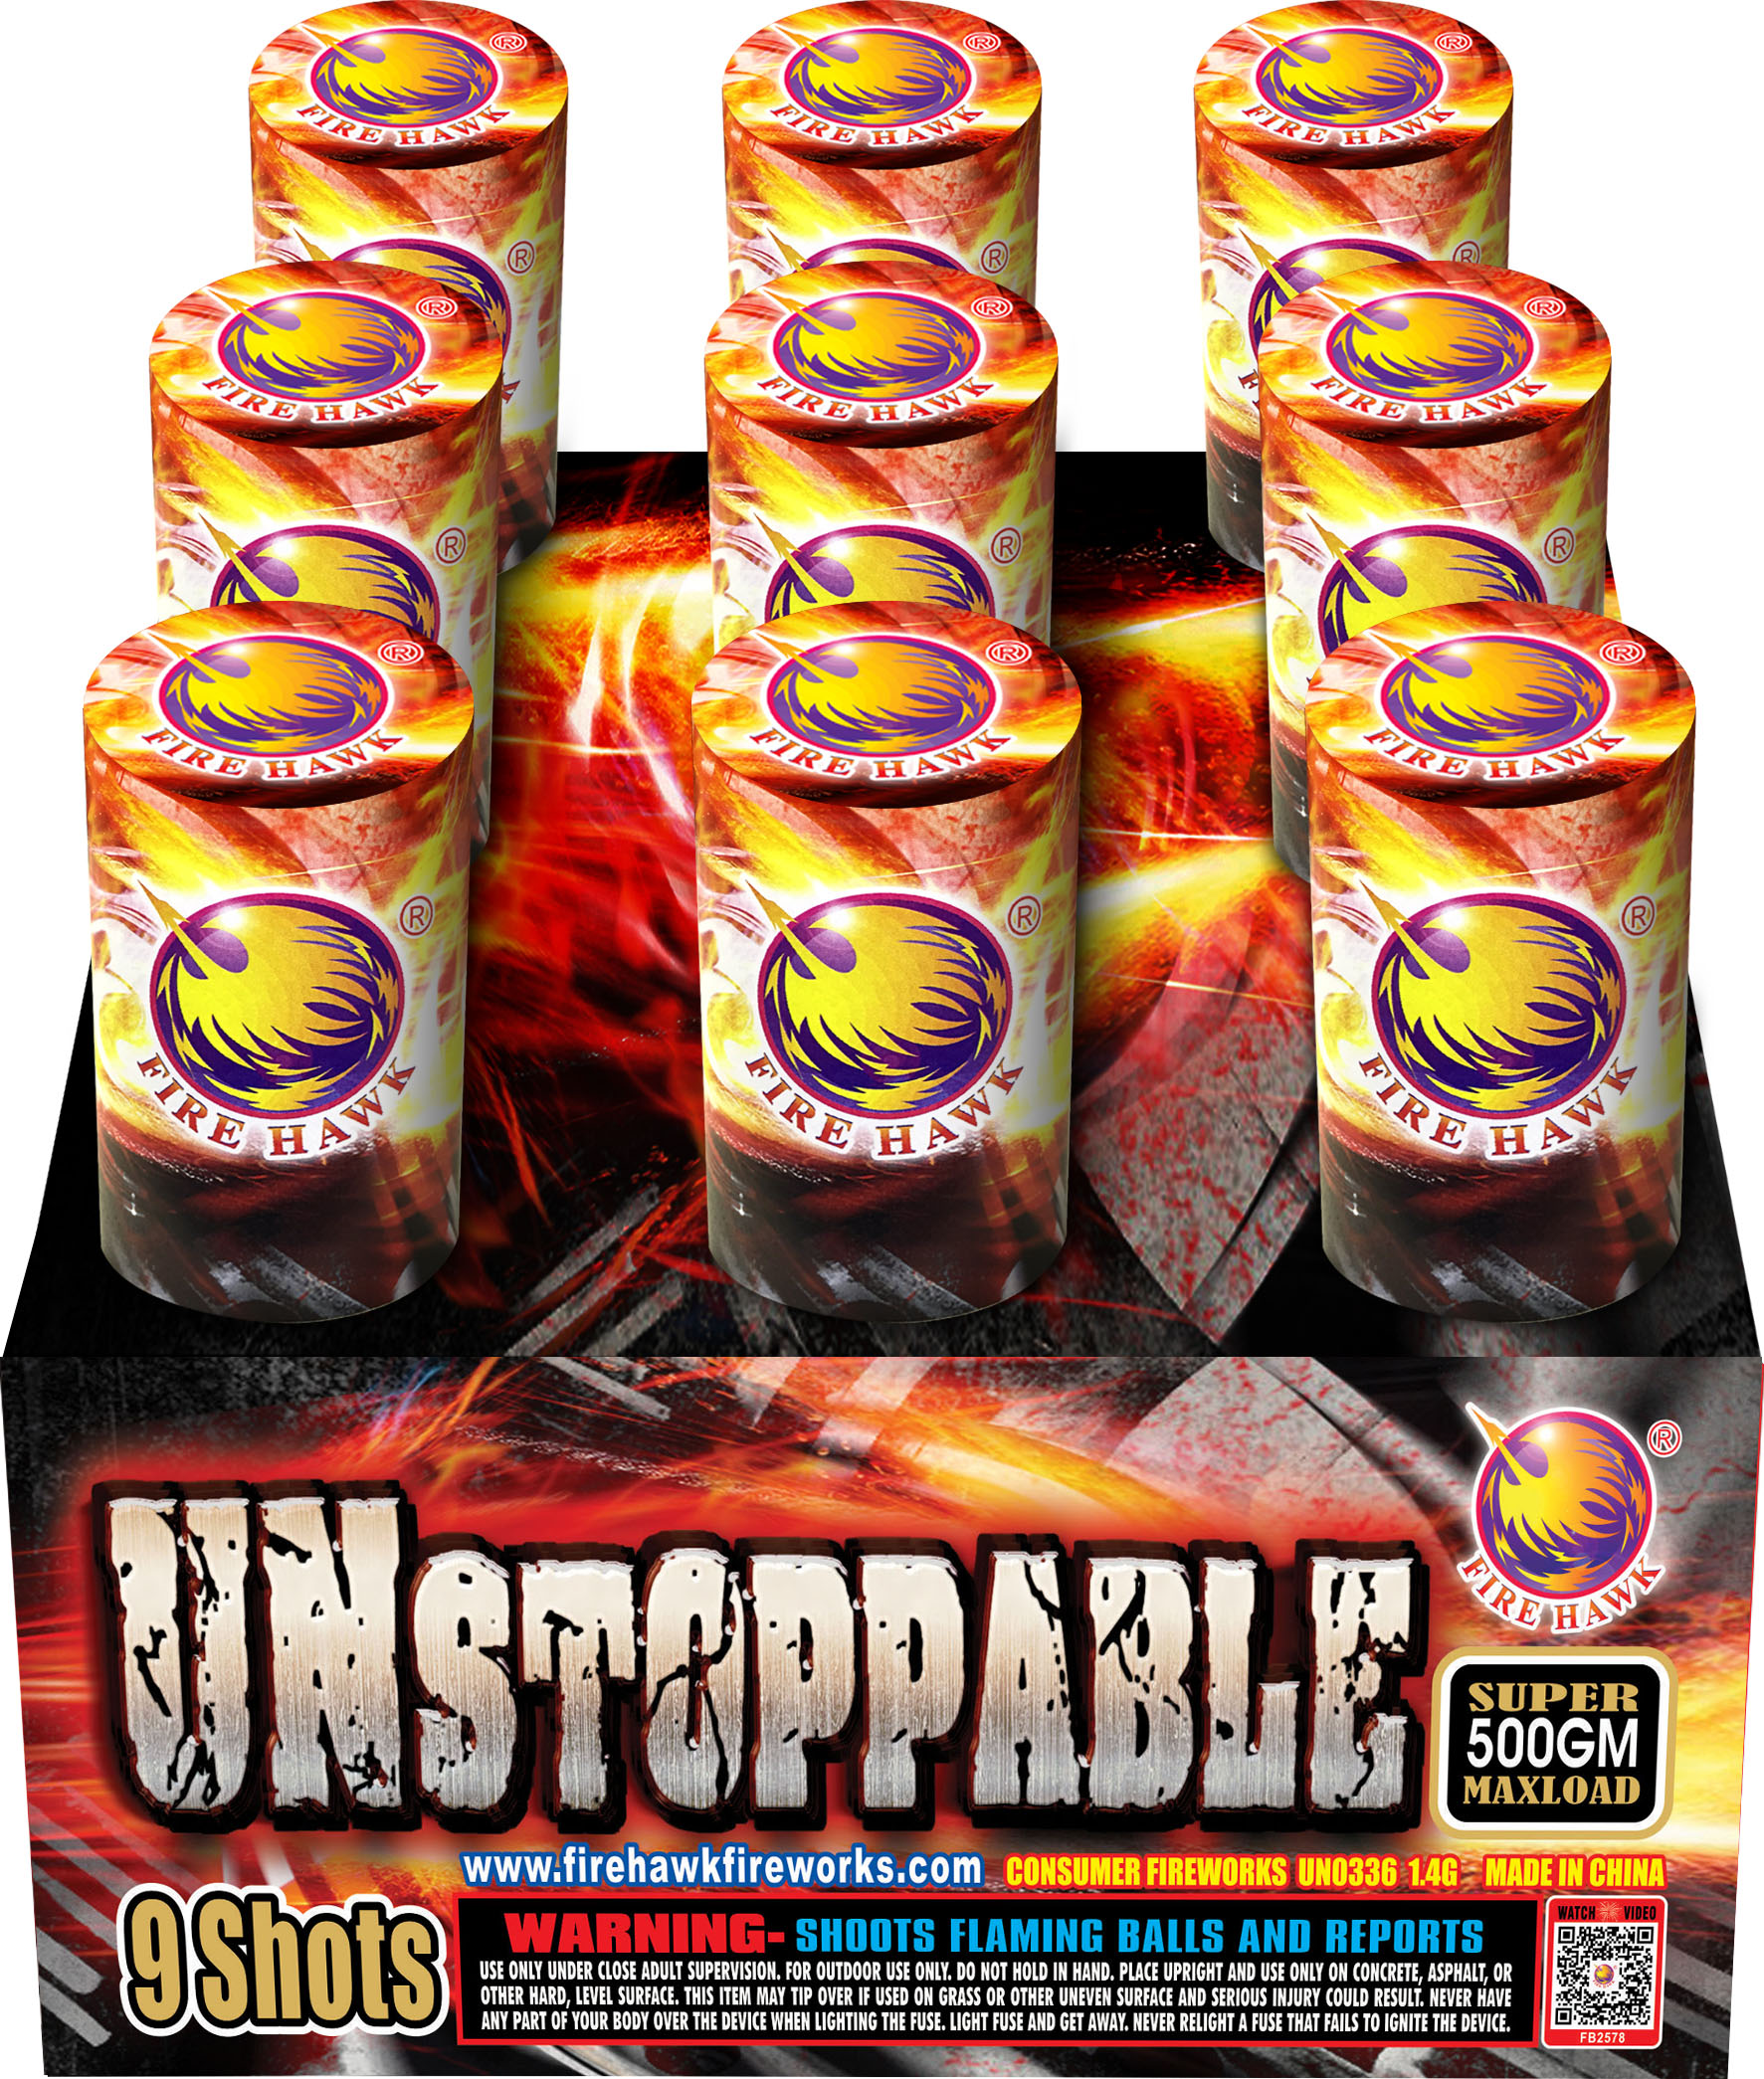 FB2578 Unstoppable2